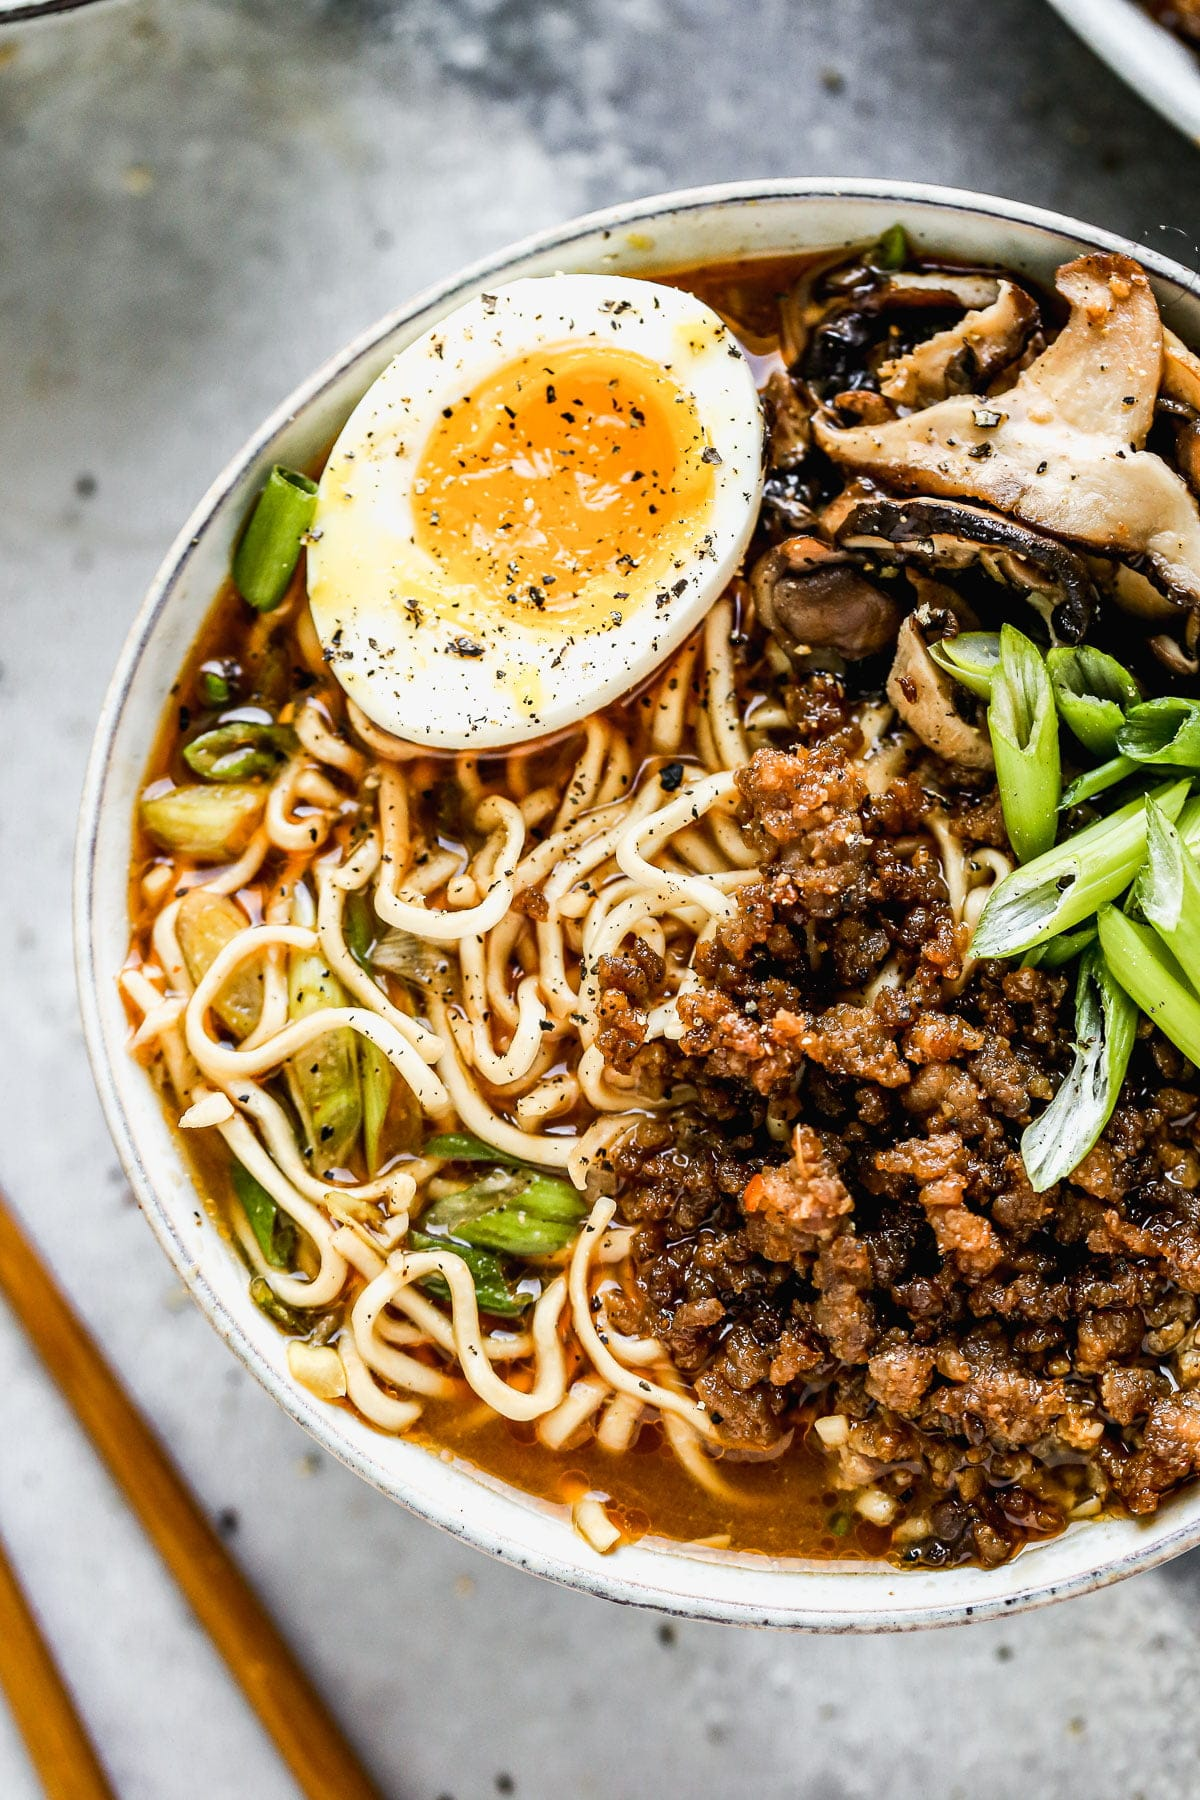 These semi-homemade Pork Miso Ramen Bowls are packed with a spicy miso broth, crispy hoisin pork, quick-pickled mushrooms, a jammy egg (of course), and chewy ramen noodles. They're highly addictive, perfect for busy days, and the only thing I want to eat from now until spring. Find the full recipe with the direct link in our profile.